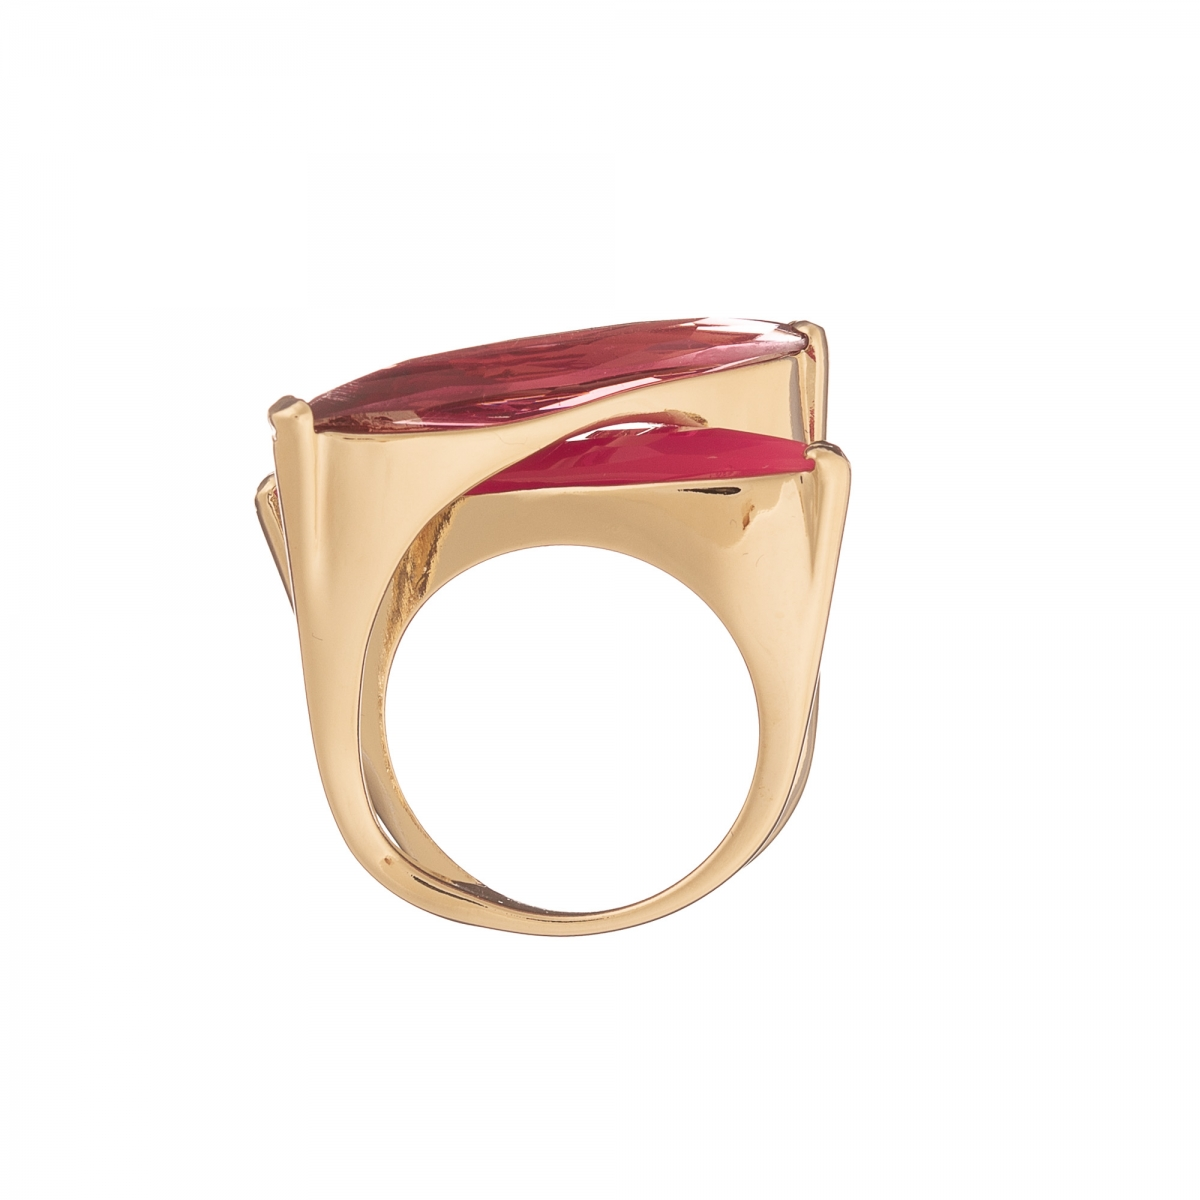 Prsteň Fine Exclusive Elegance Resin Stones in Fuchsia Gold